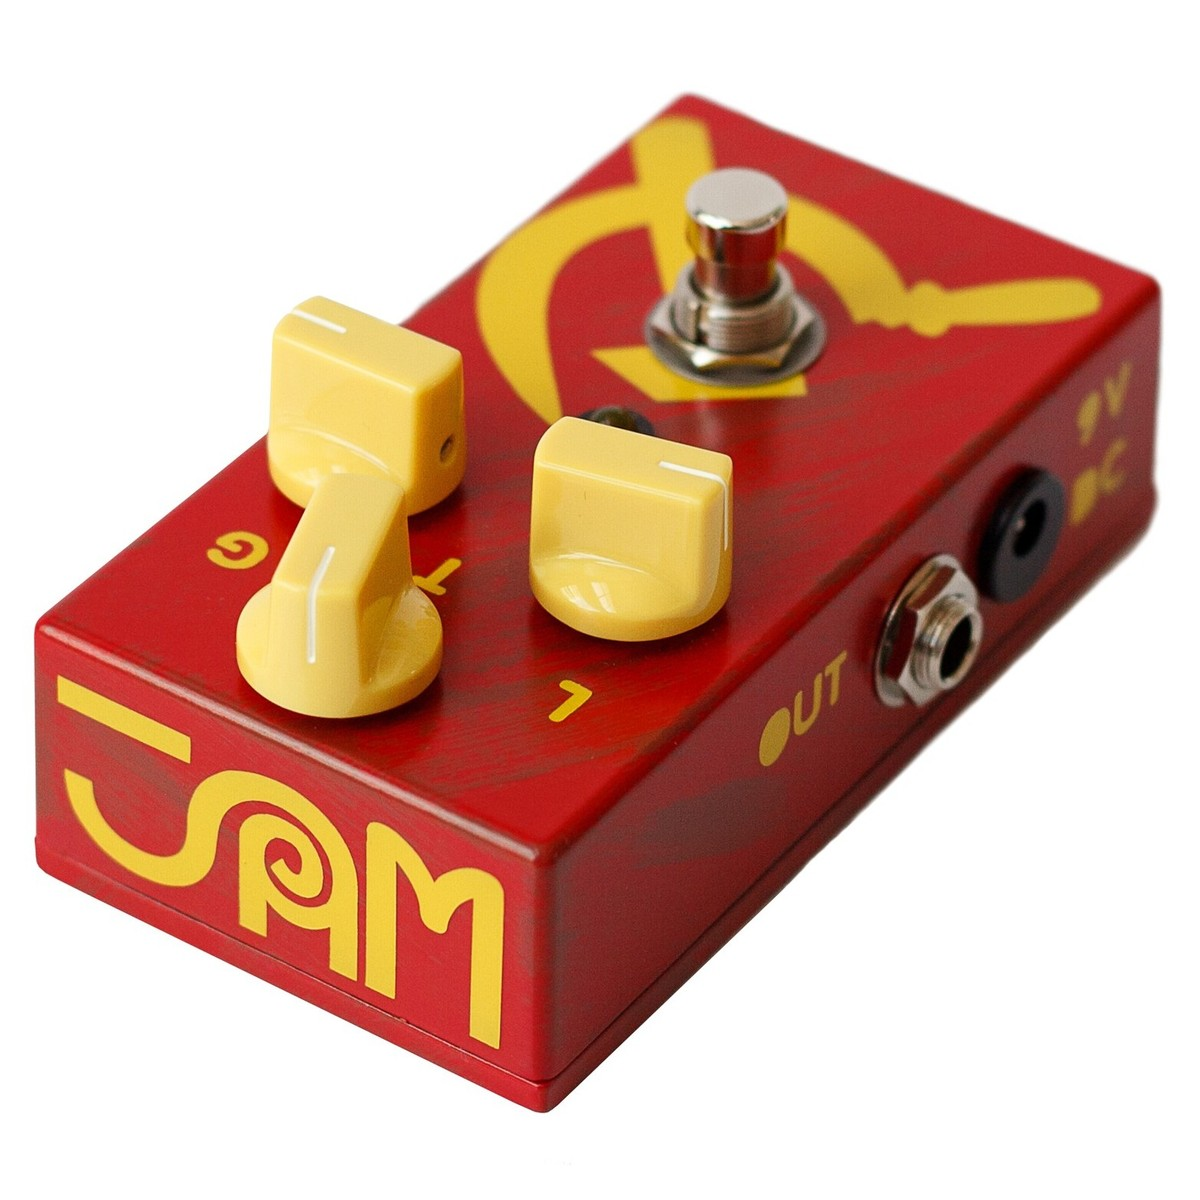 JAM Pedals Red Muck Fuzz/Distortion Pedal at Gear4music.com